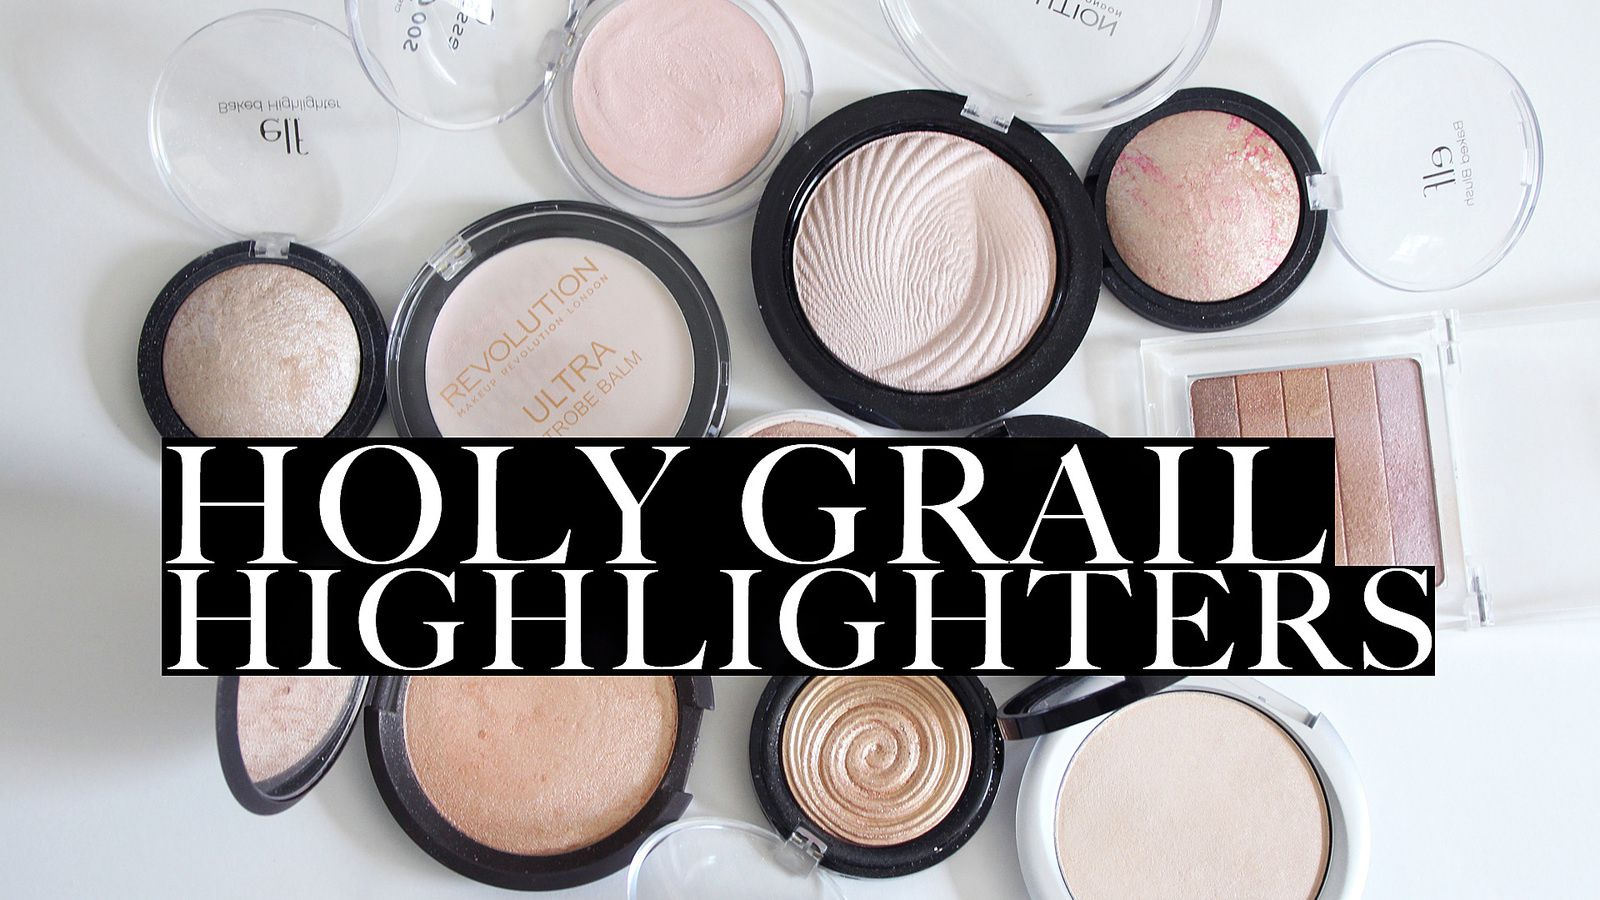 Holy Grail HIGHLIGHTERS! 2016